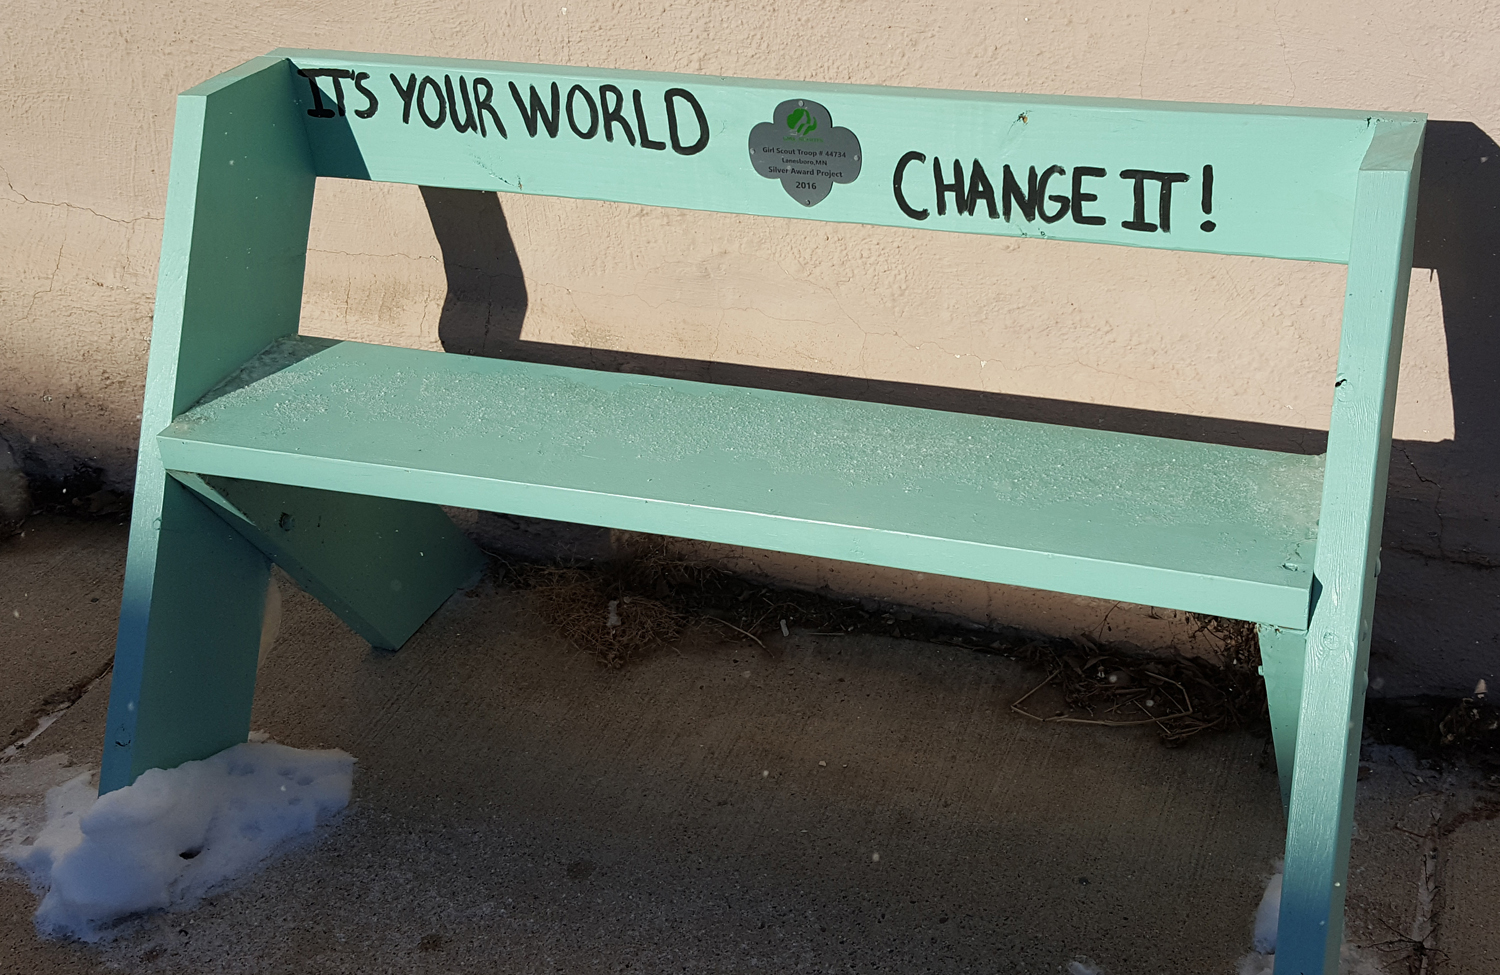 A bench in Lanesboro, Minnesota, says it all: It's your world, change it!